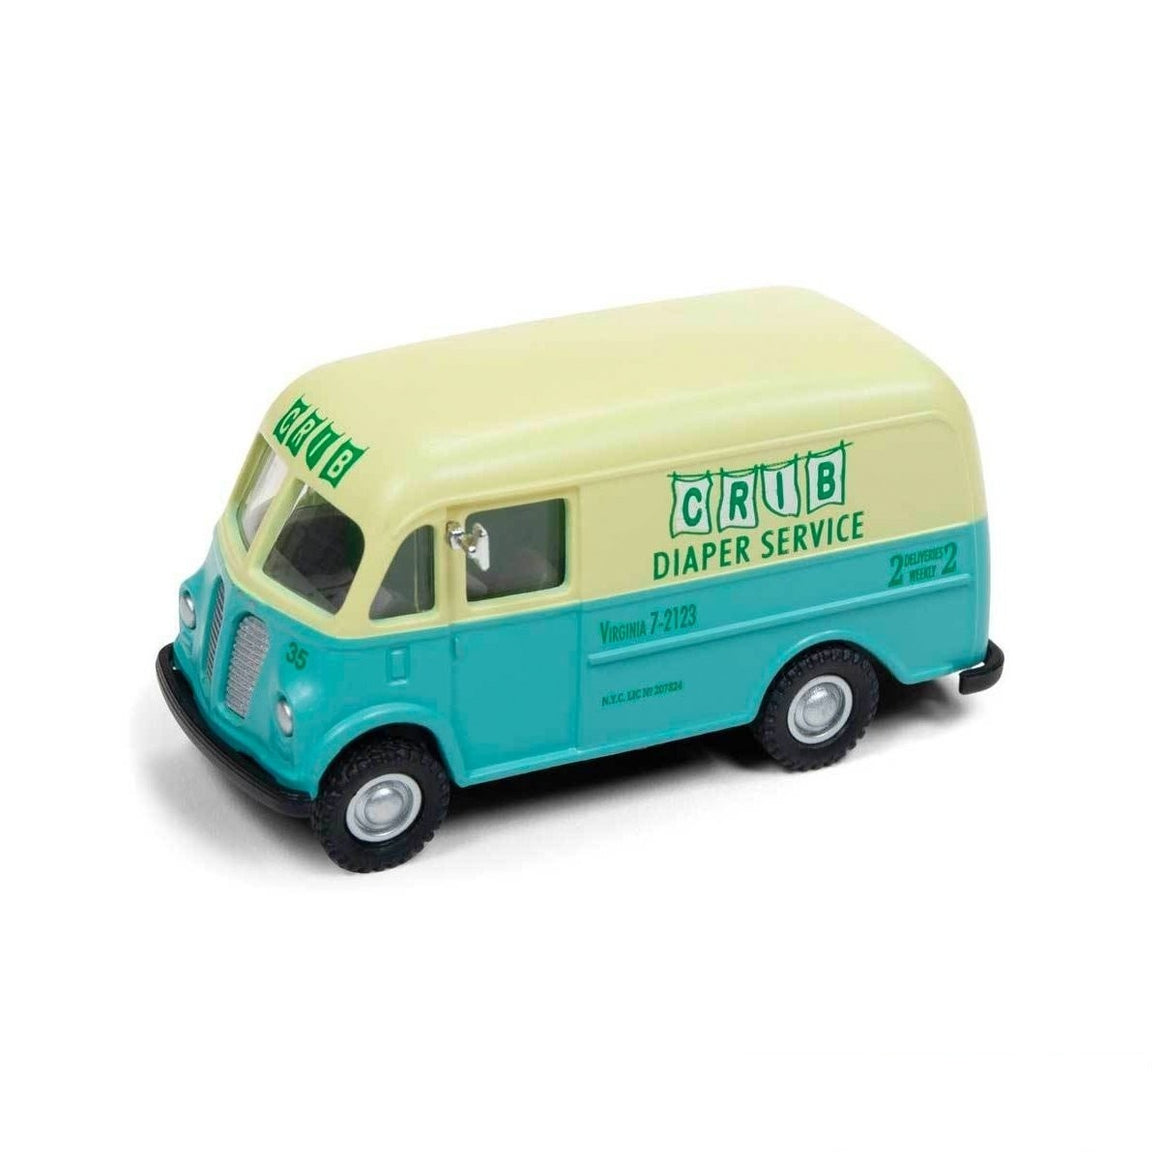 HO Scale: 1940/50s International Harvester Metro Delivery Van - Crib Diaper Delivery